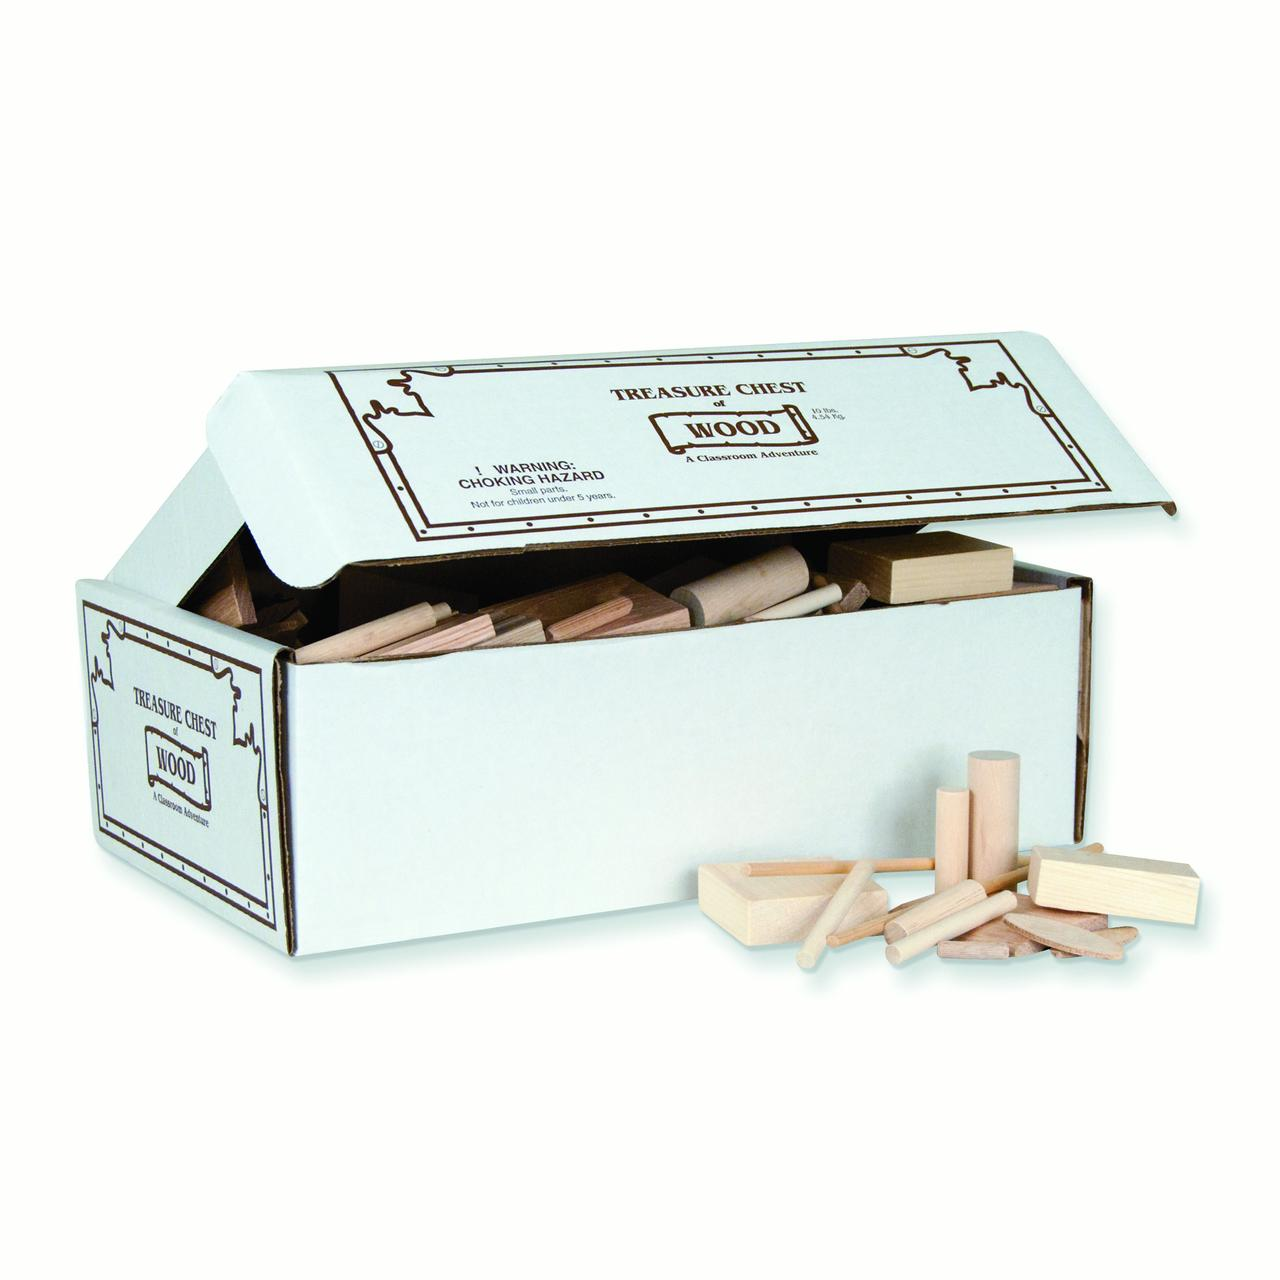 Pacon® Treasure Chest of Wood, 10lbs